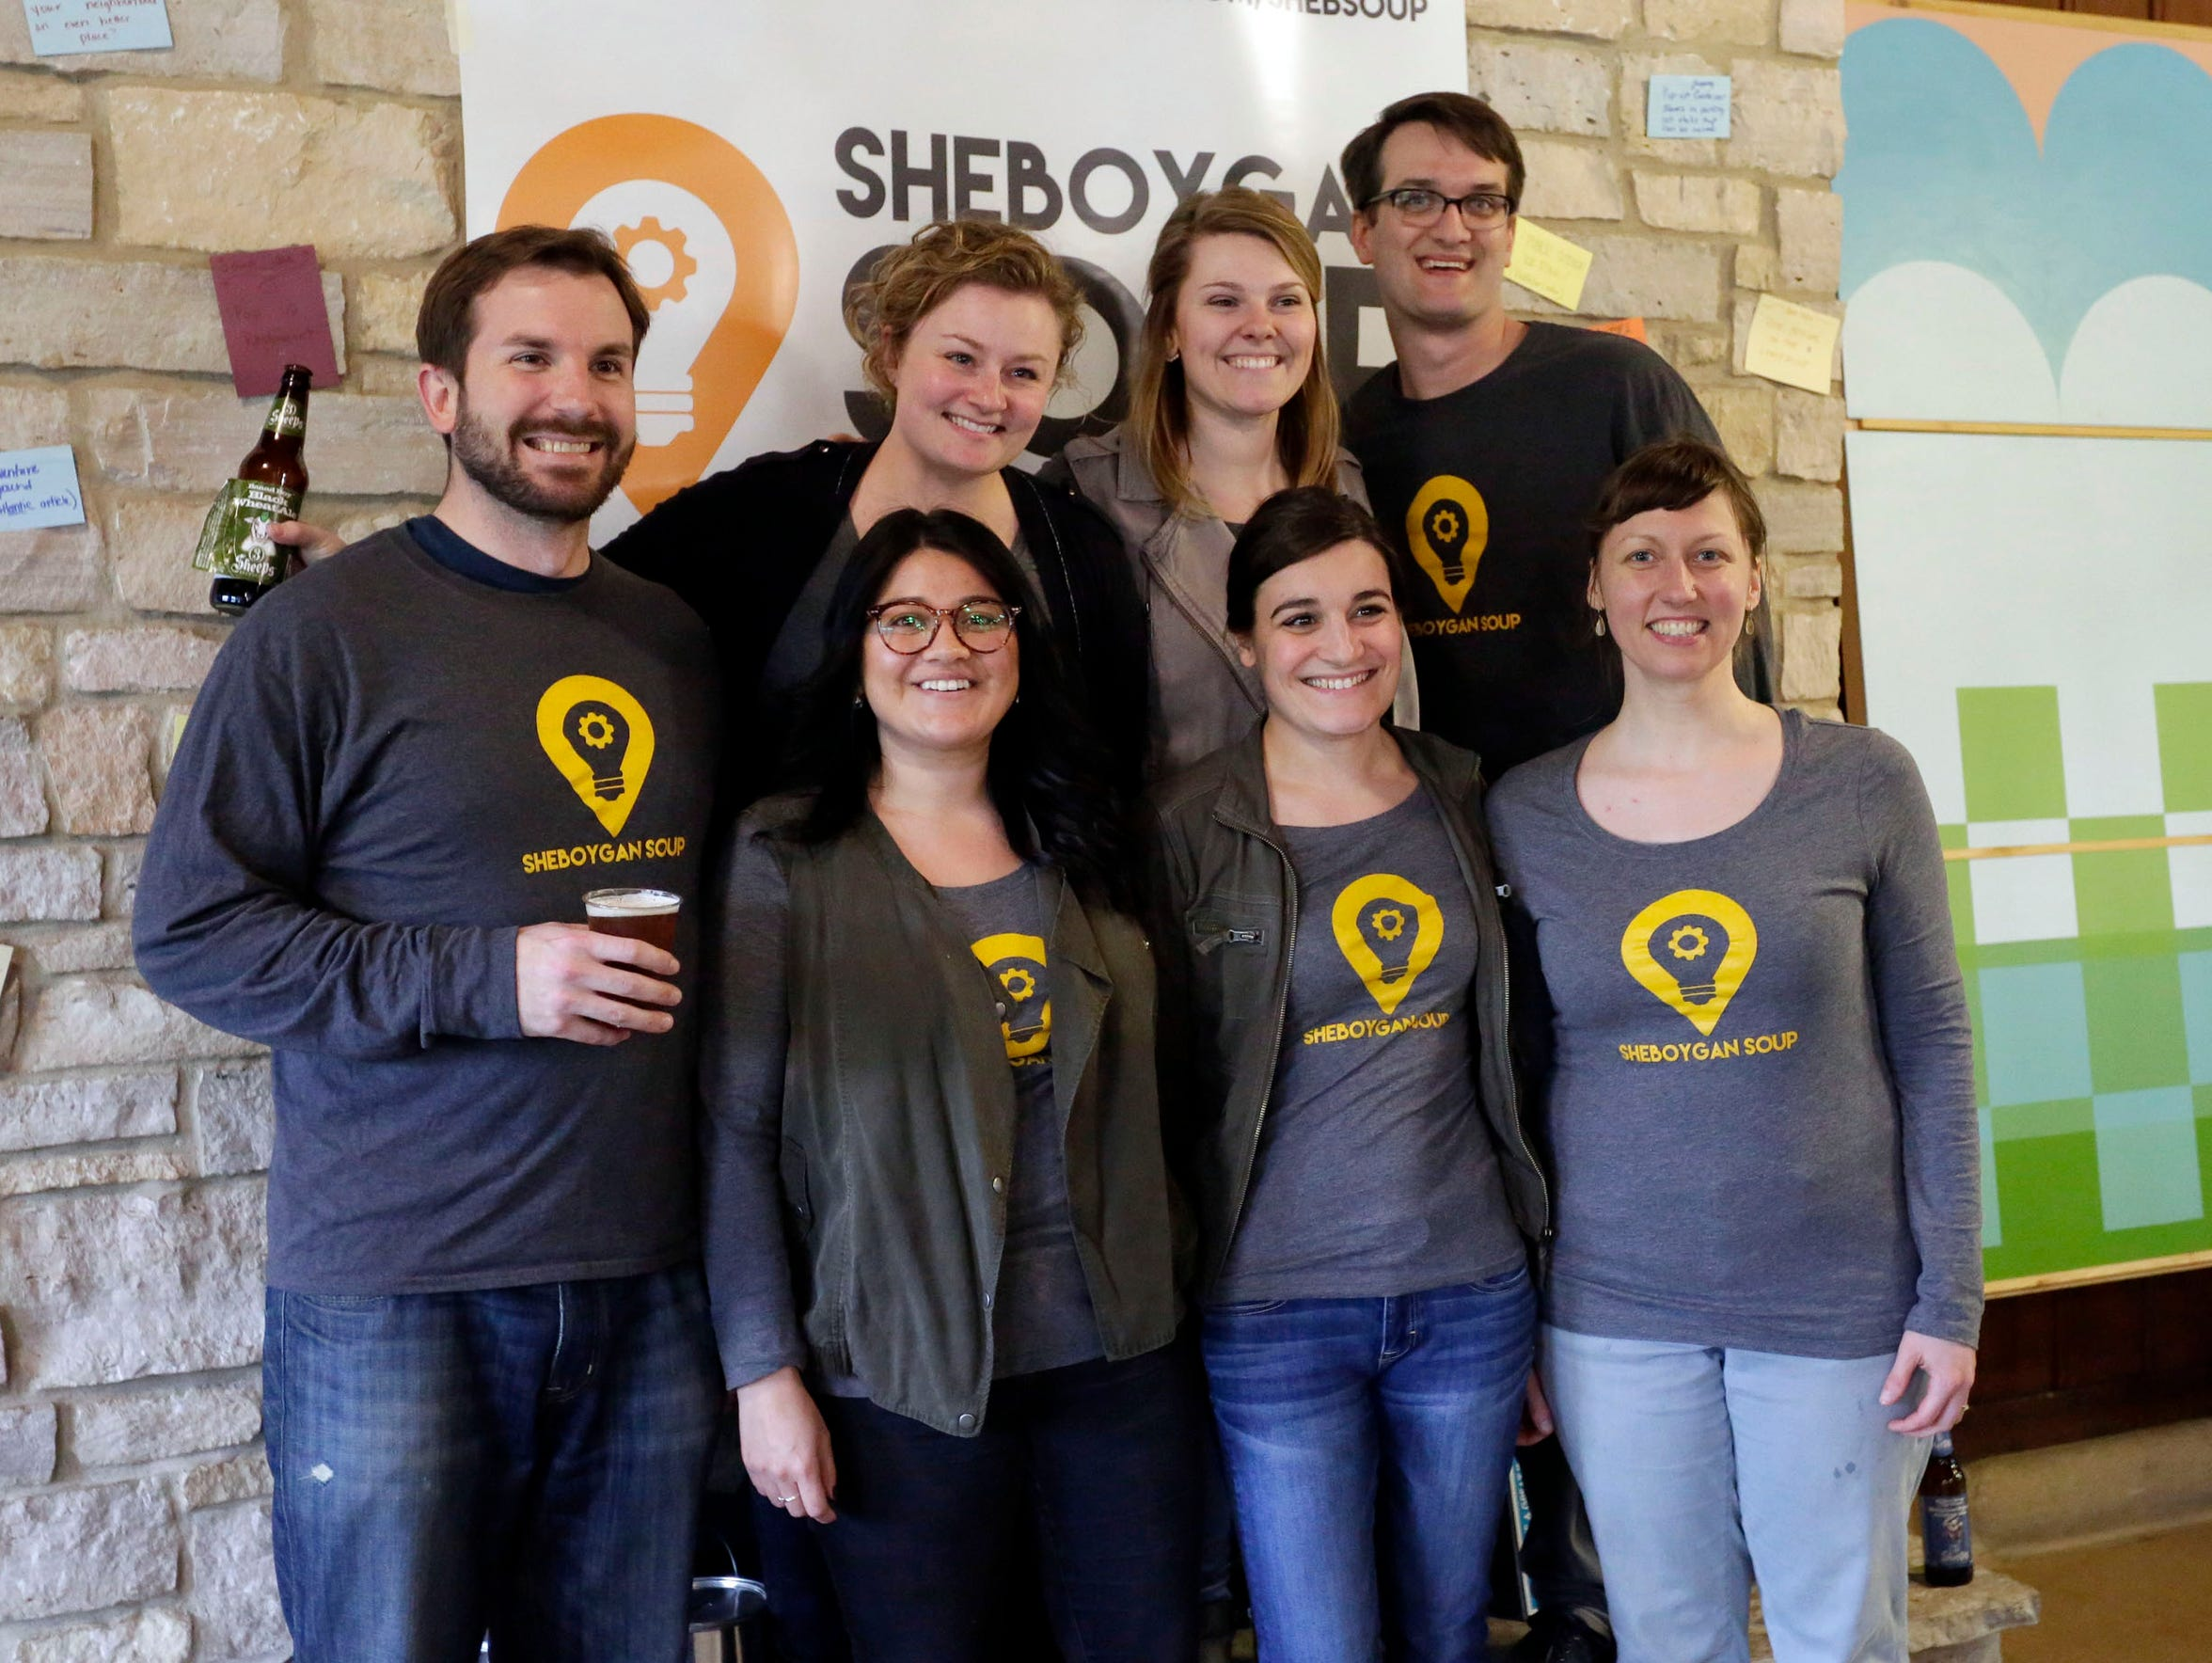 A group of Sheboygan SOUP advocates pose during the